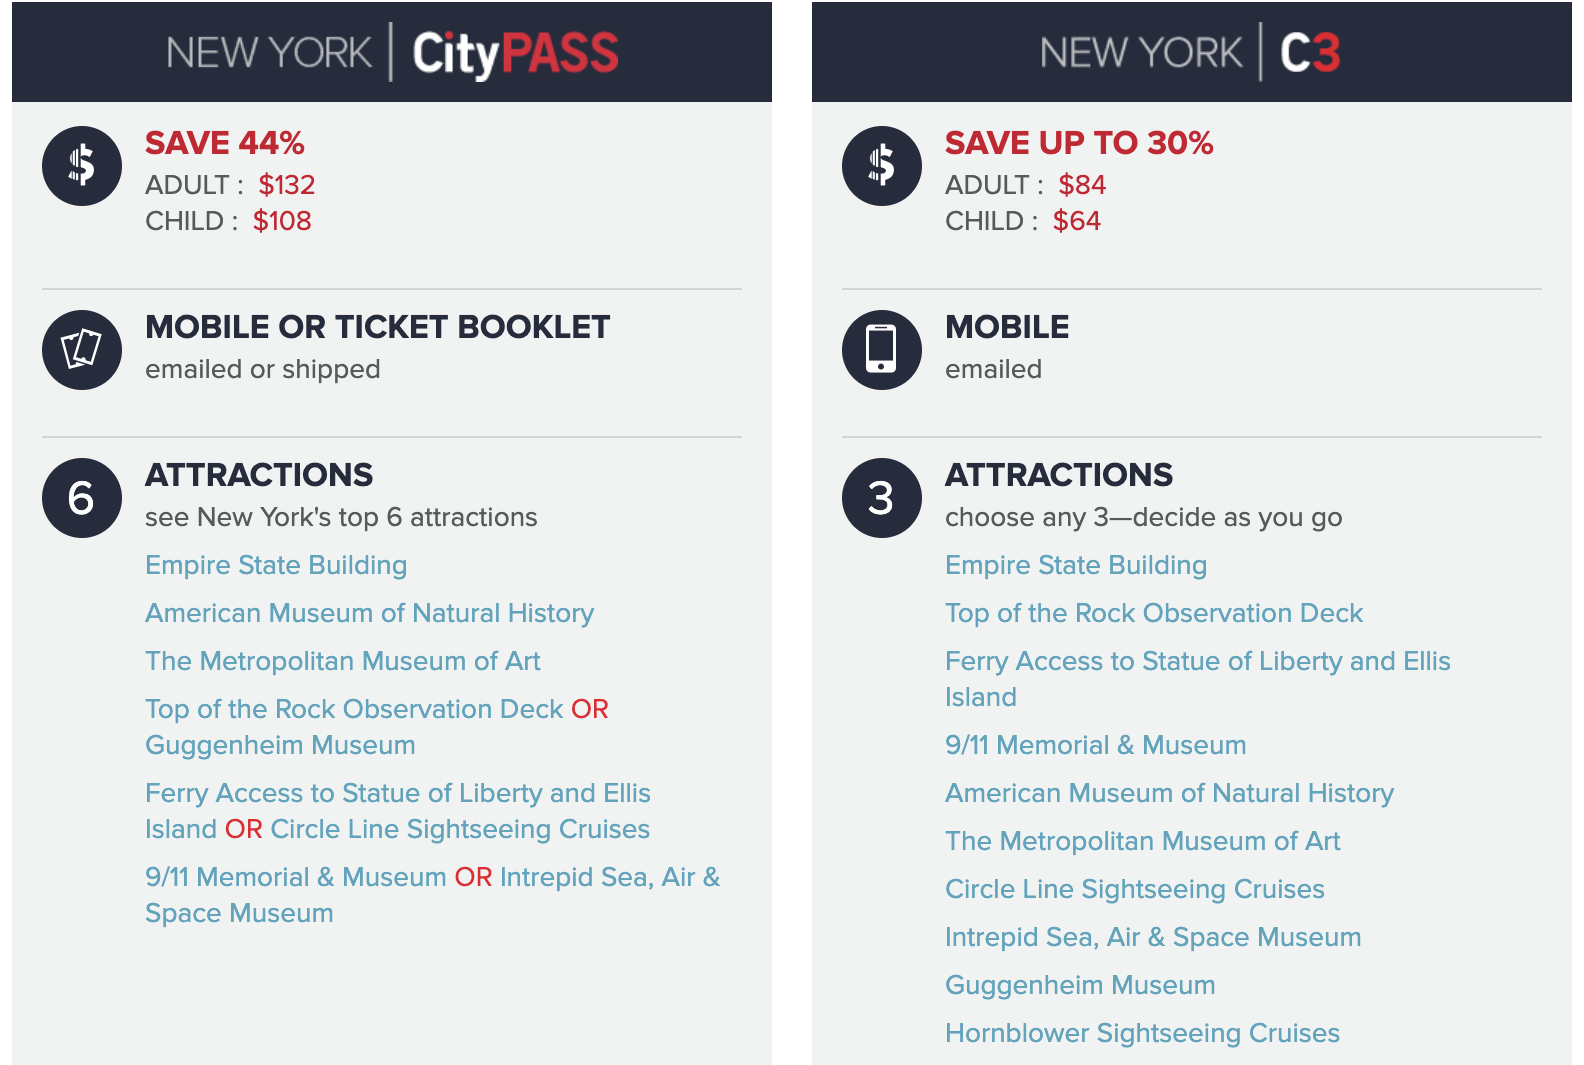 BTSNYC Experiences On Going CityPASS New York